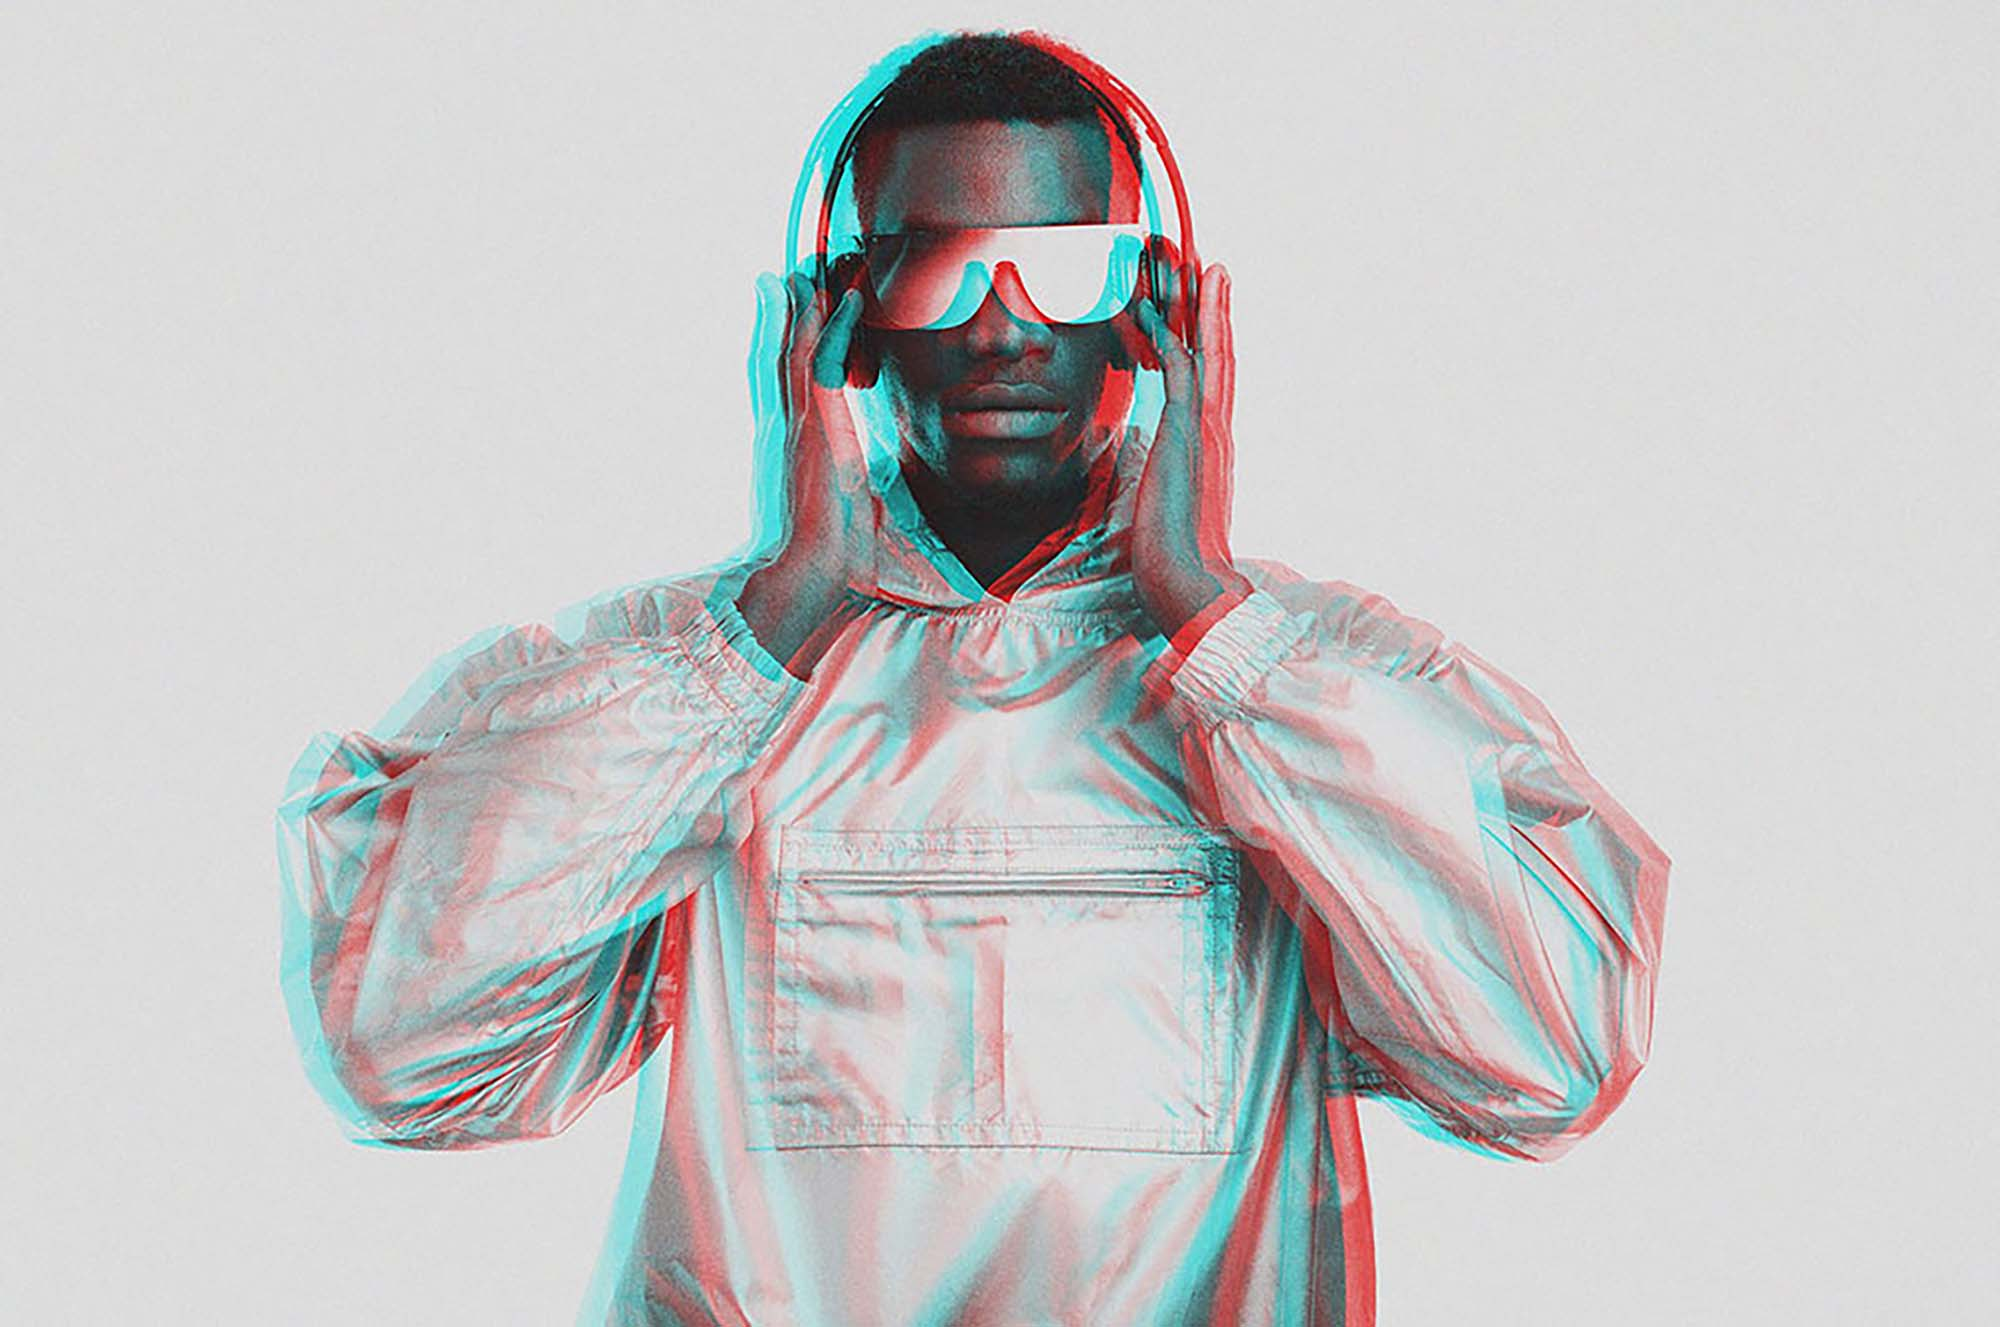 3D Anaglyph Photoshop Effect 1